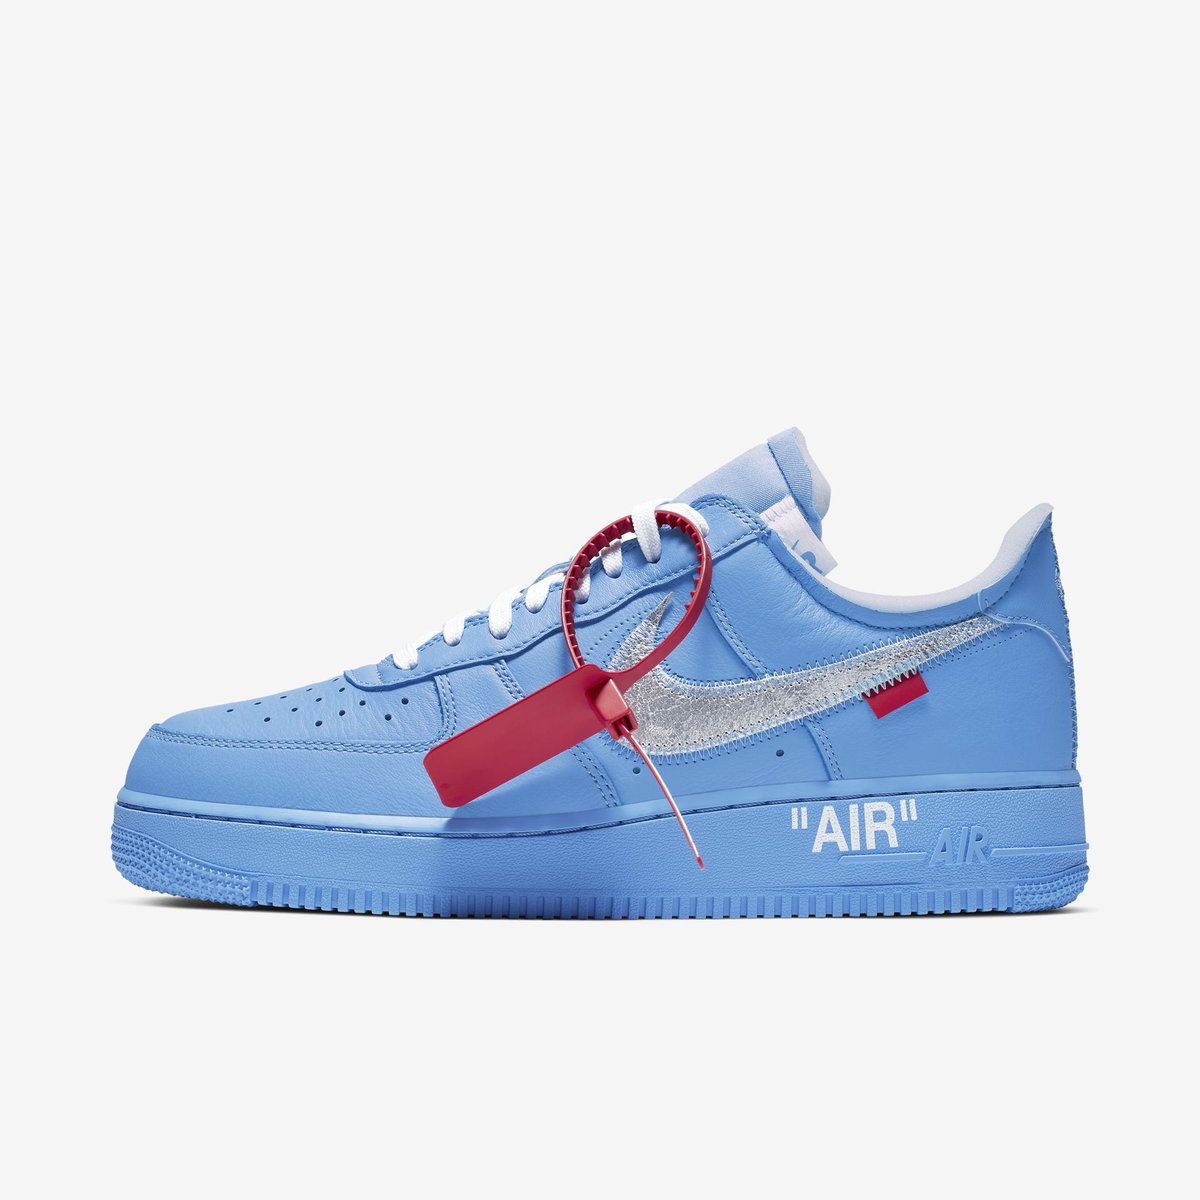 Off White x AF1 #AD  Autocheckout slot giveaway  How to enter: Follow @table_of_chefs  RT Like Comment your size  Will choose winner in 4 hours! <br>http://pic.twitter.com/UYheEyJkDW